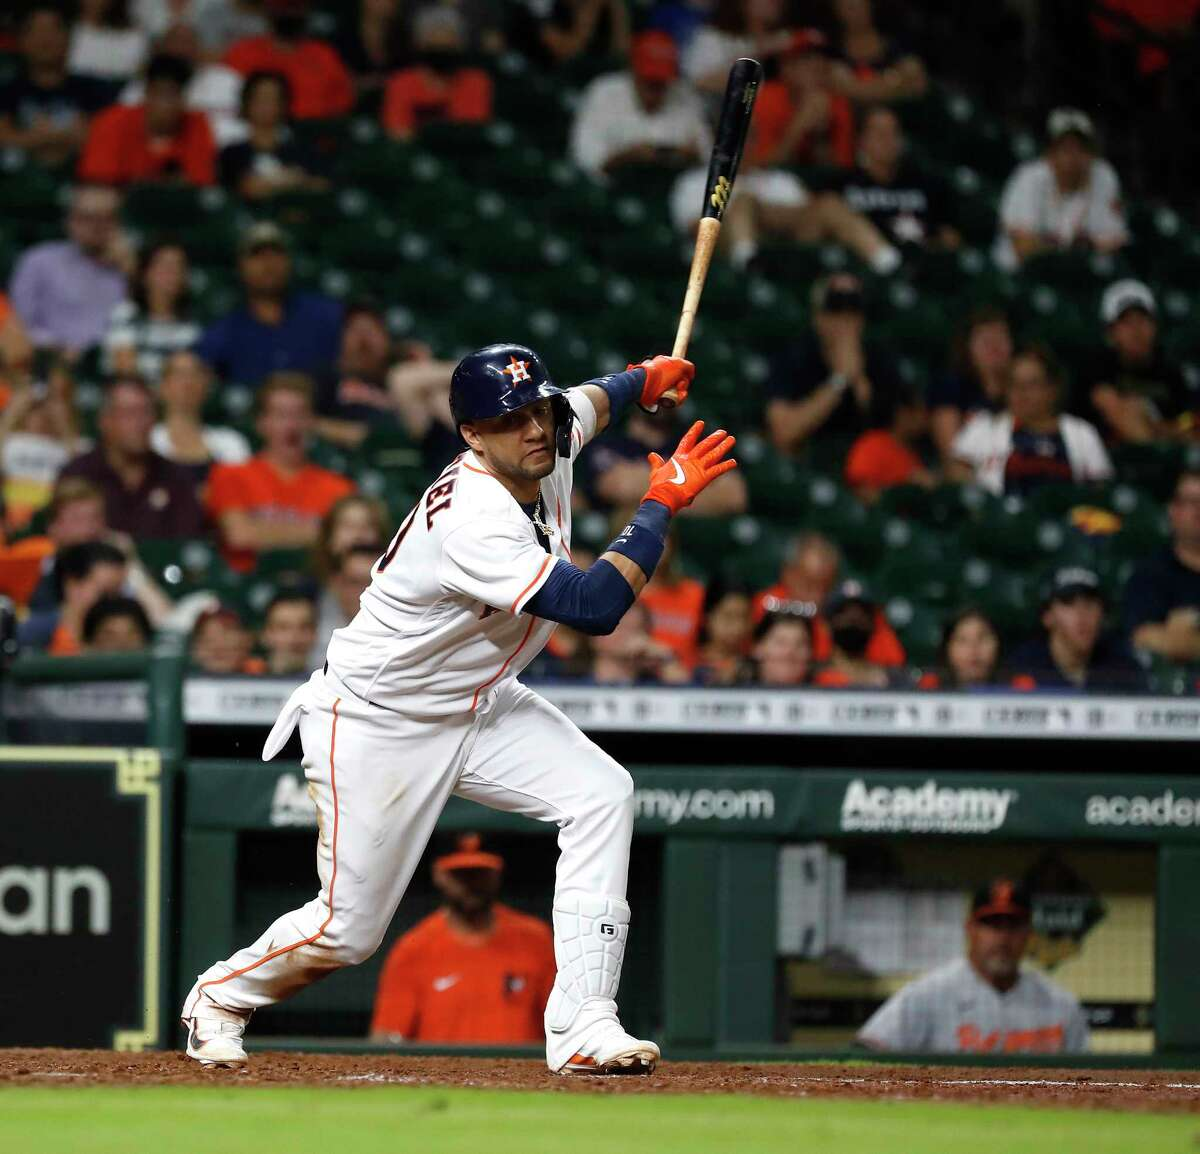 Houston Astros Yuli Gurriel (10) strikes out against Baltimore Orioles relief pitcher Cole Sulser (54) during the eighth inning of an MLB baseball game at Minute Maid Park, Wednesday, June 30, 2021, in Houston.